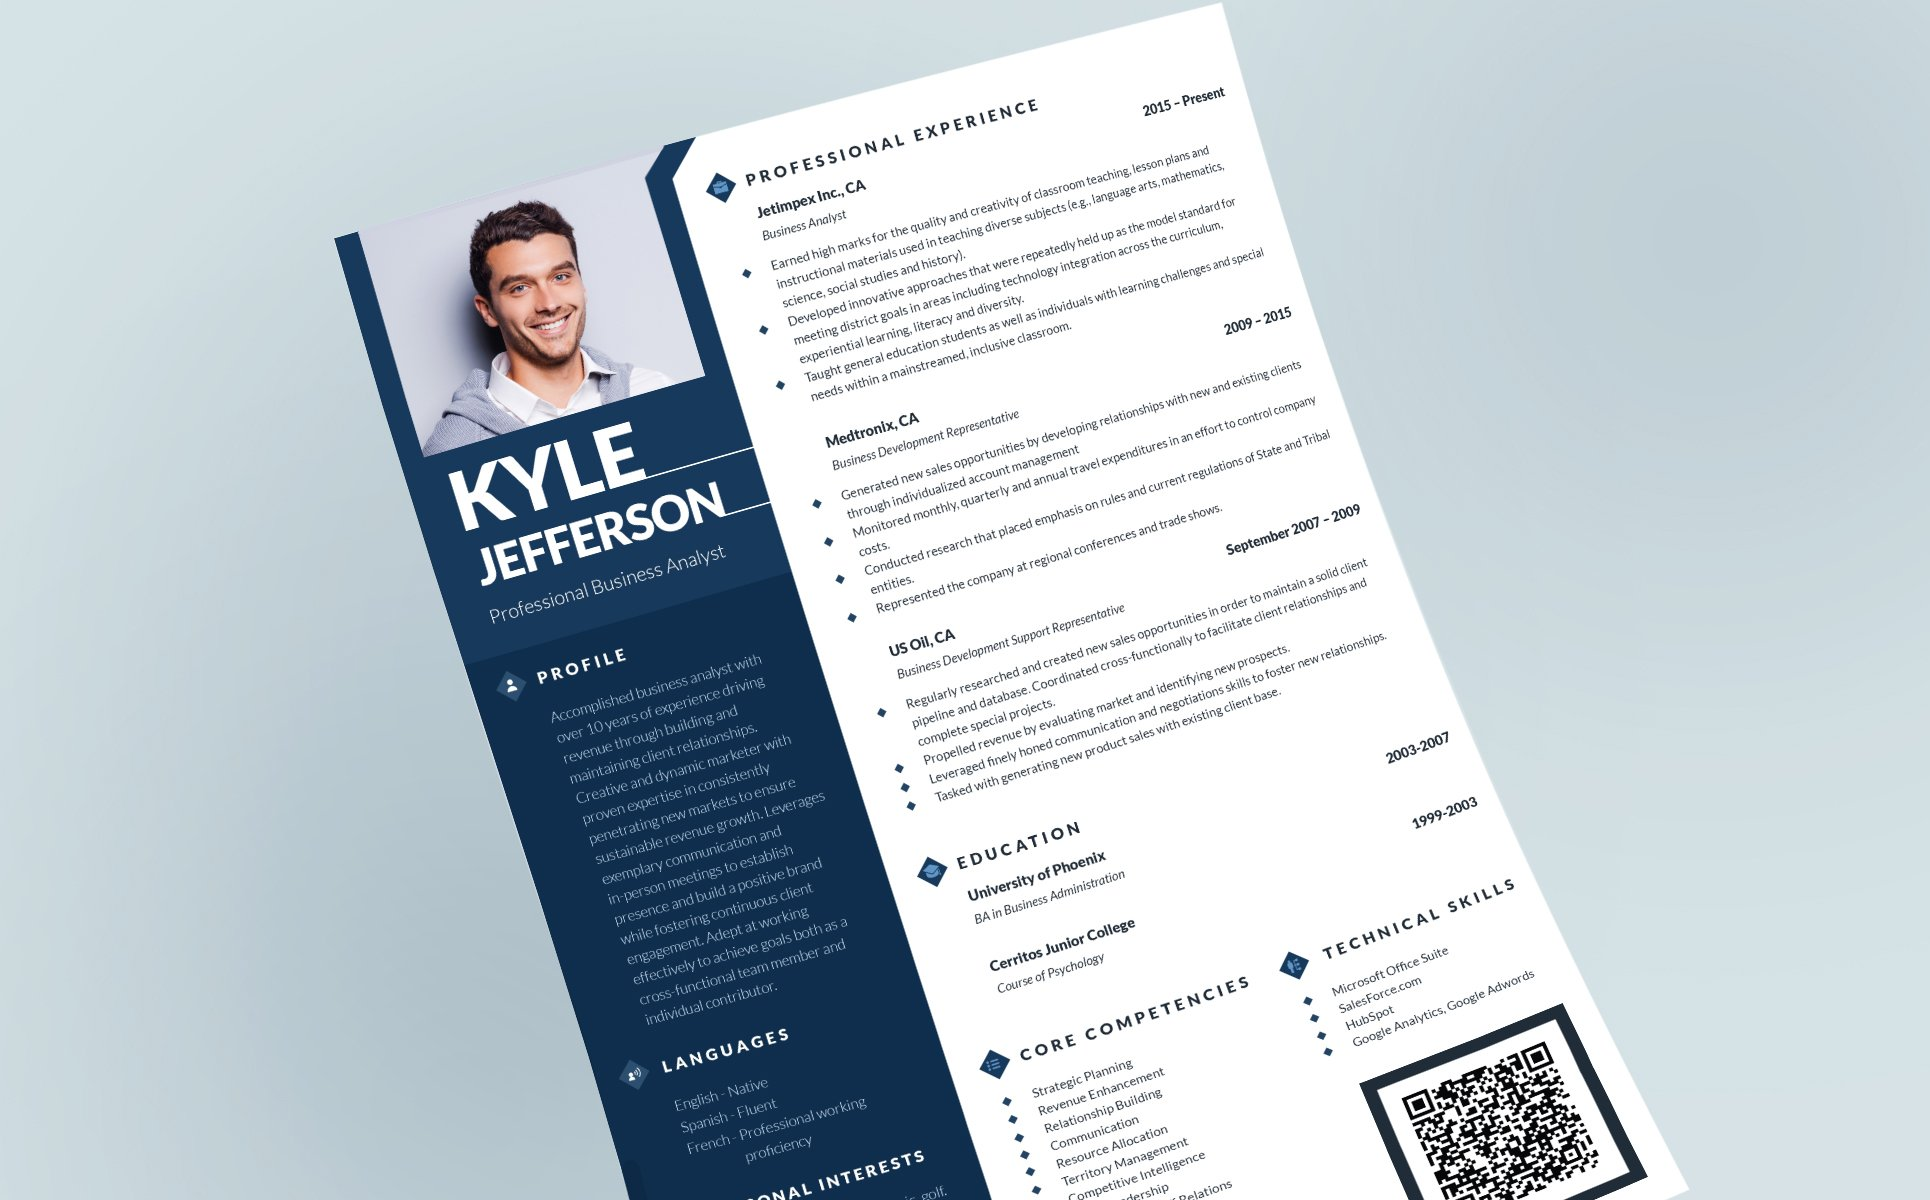 kyle jefferson businessman manager and consultant resume template